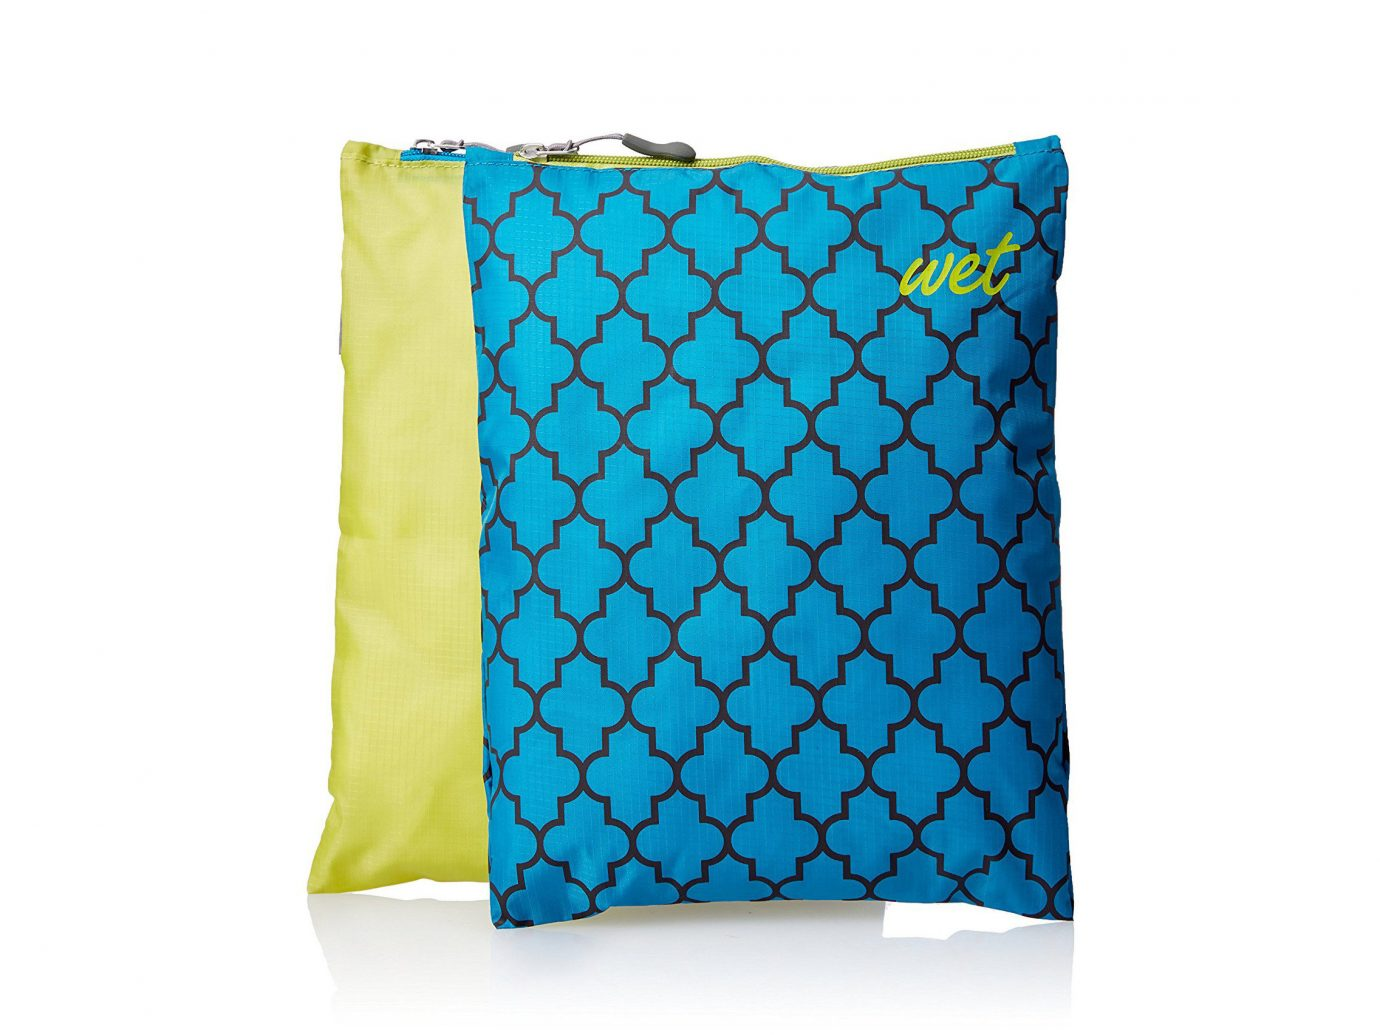 Packing Tips Travel Shop Travel Tips throw pillow aqua teal product turquoise cushion pattern electric blue pillow rectangle